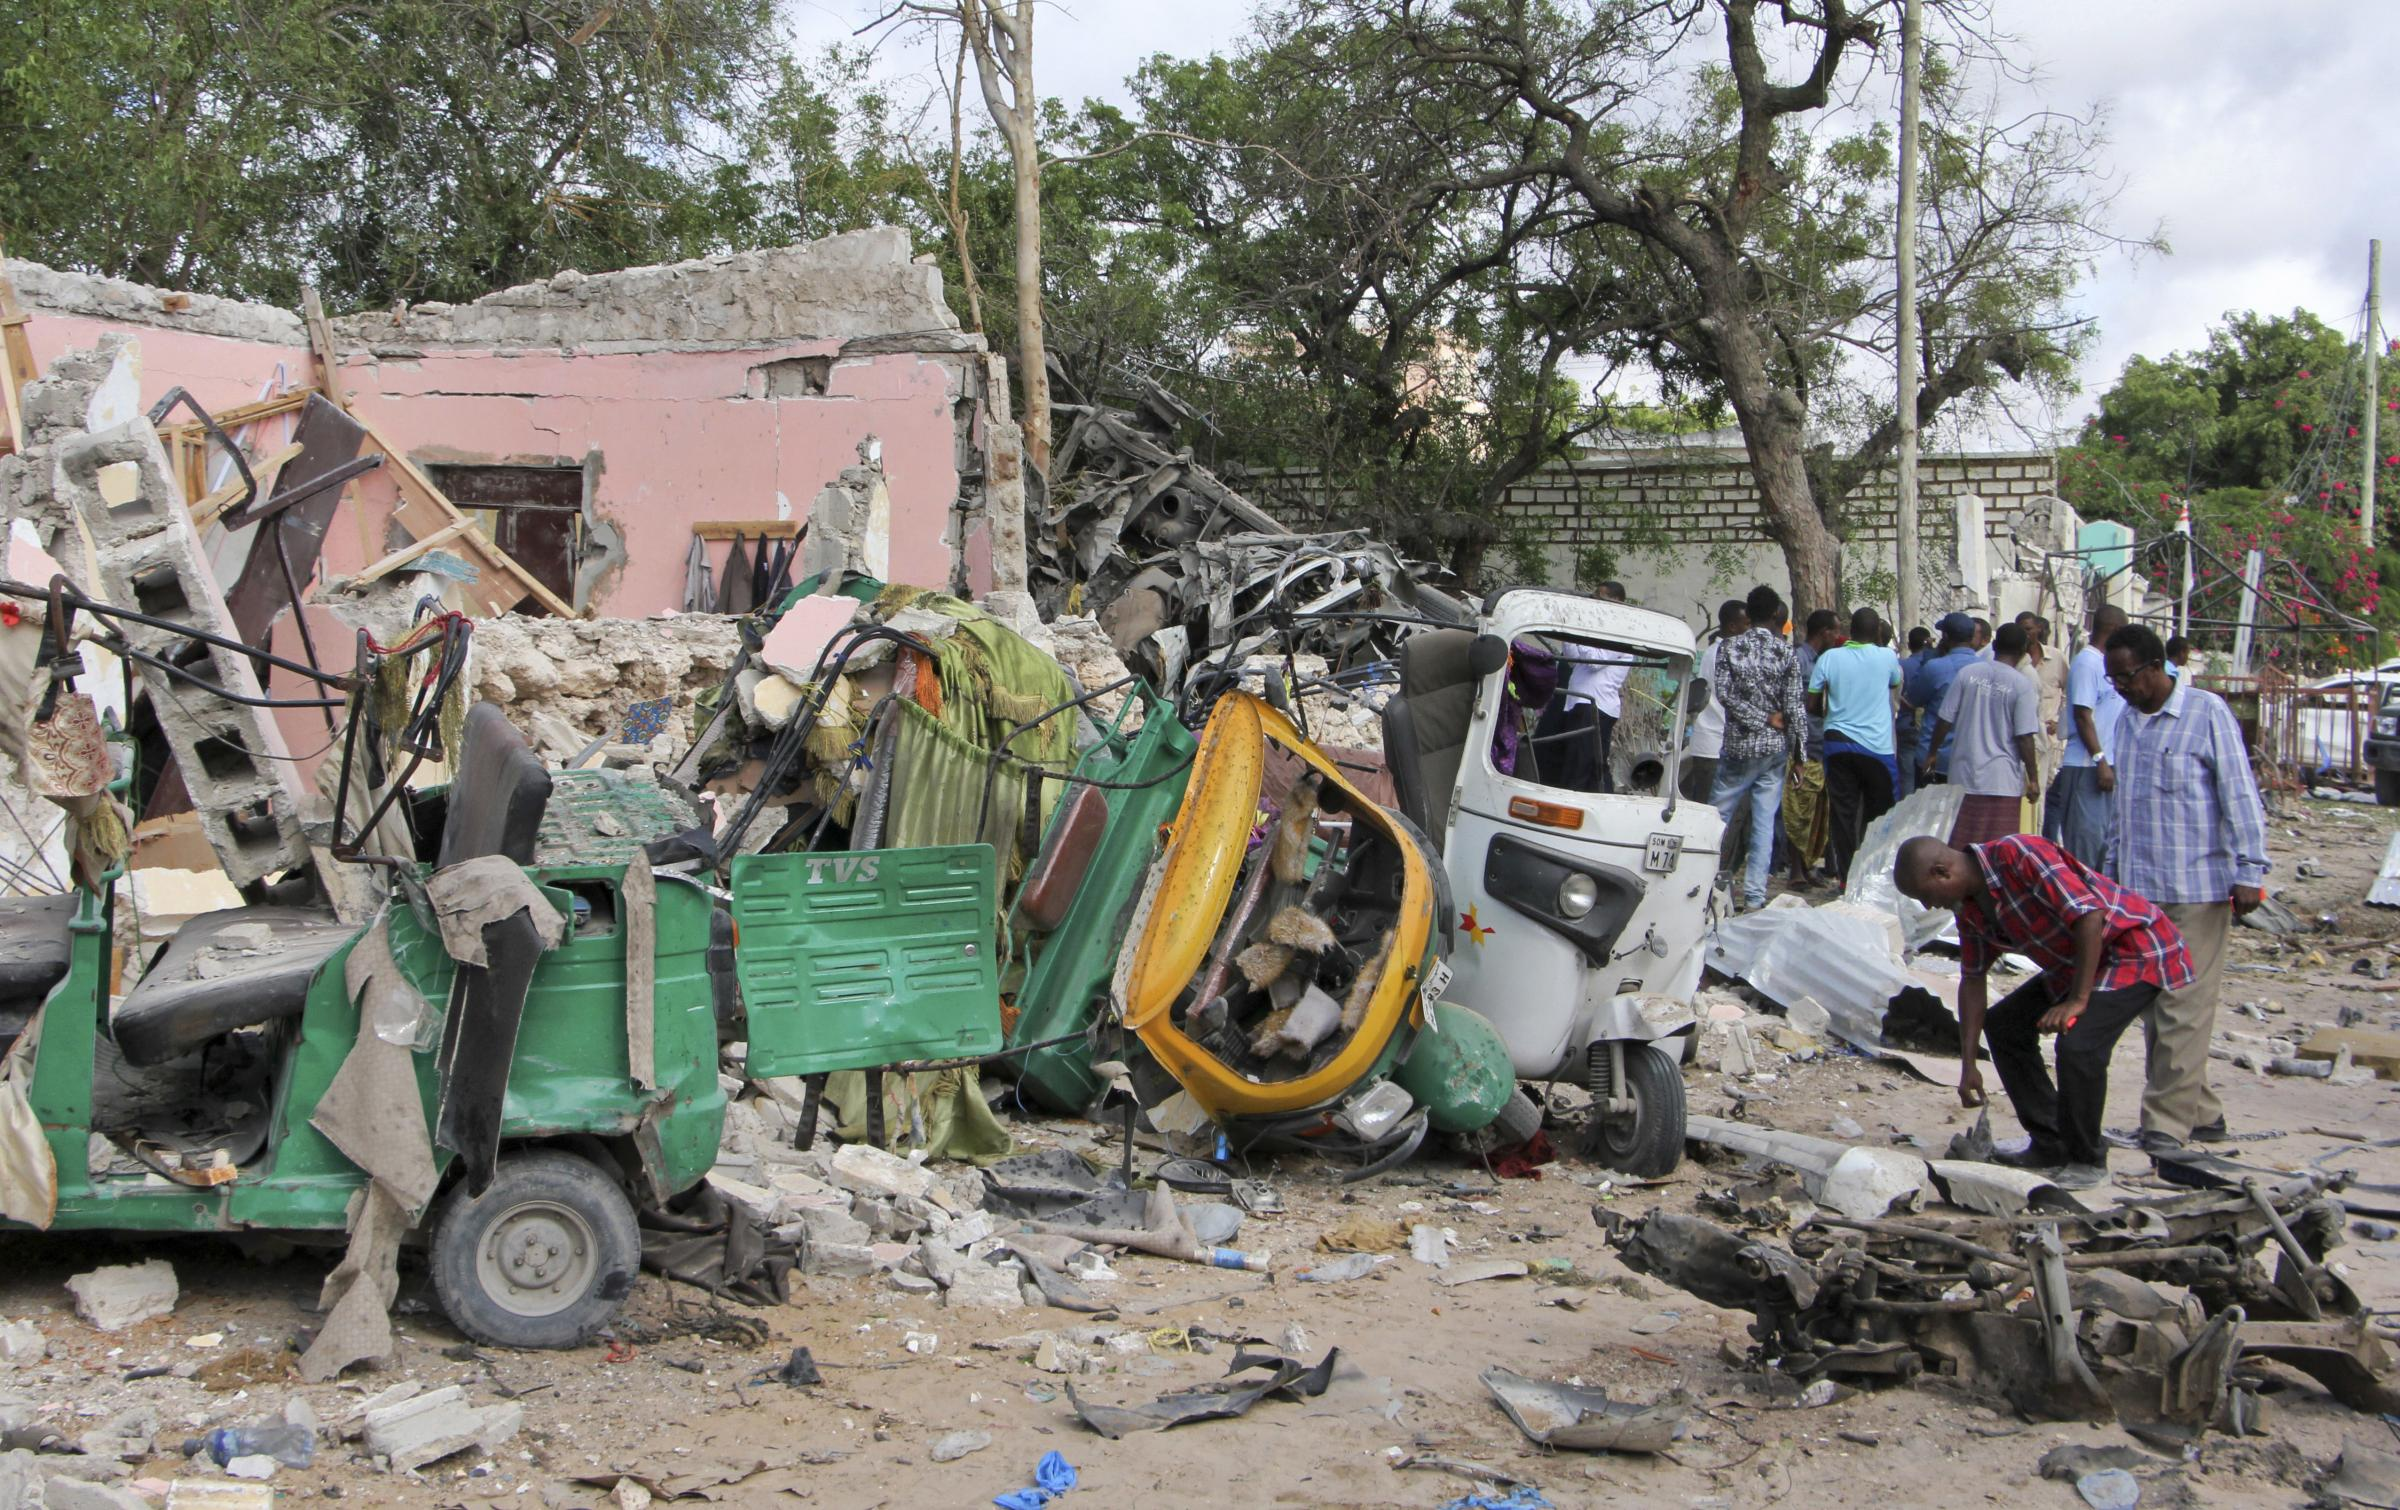 Al-Shabab claims killing 61 in attack on base in Somalia